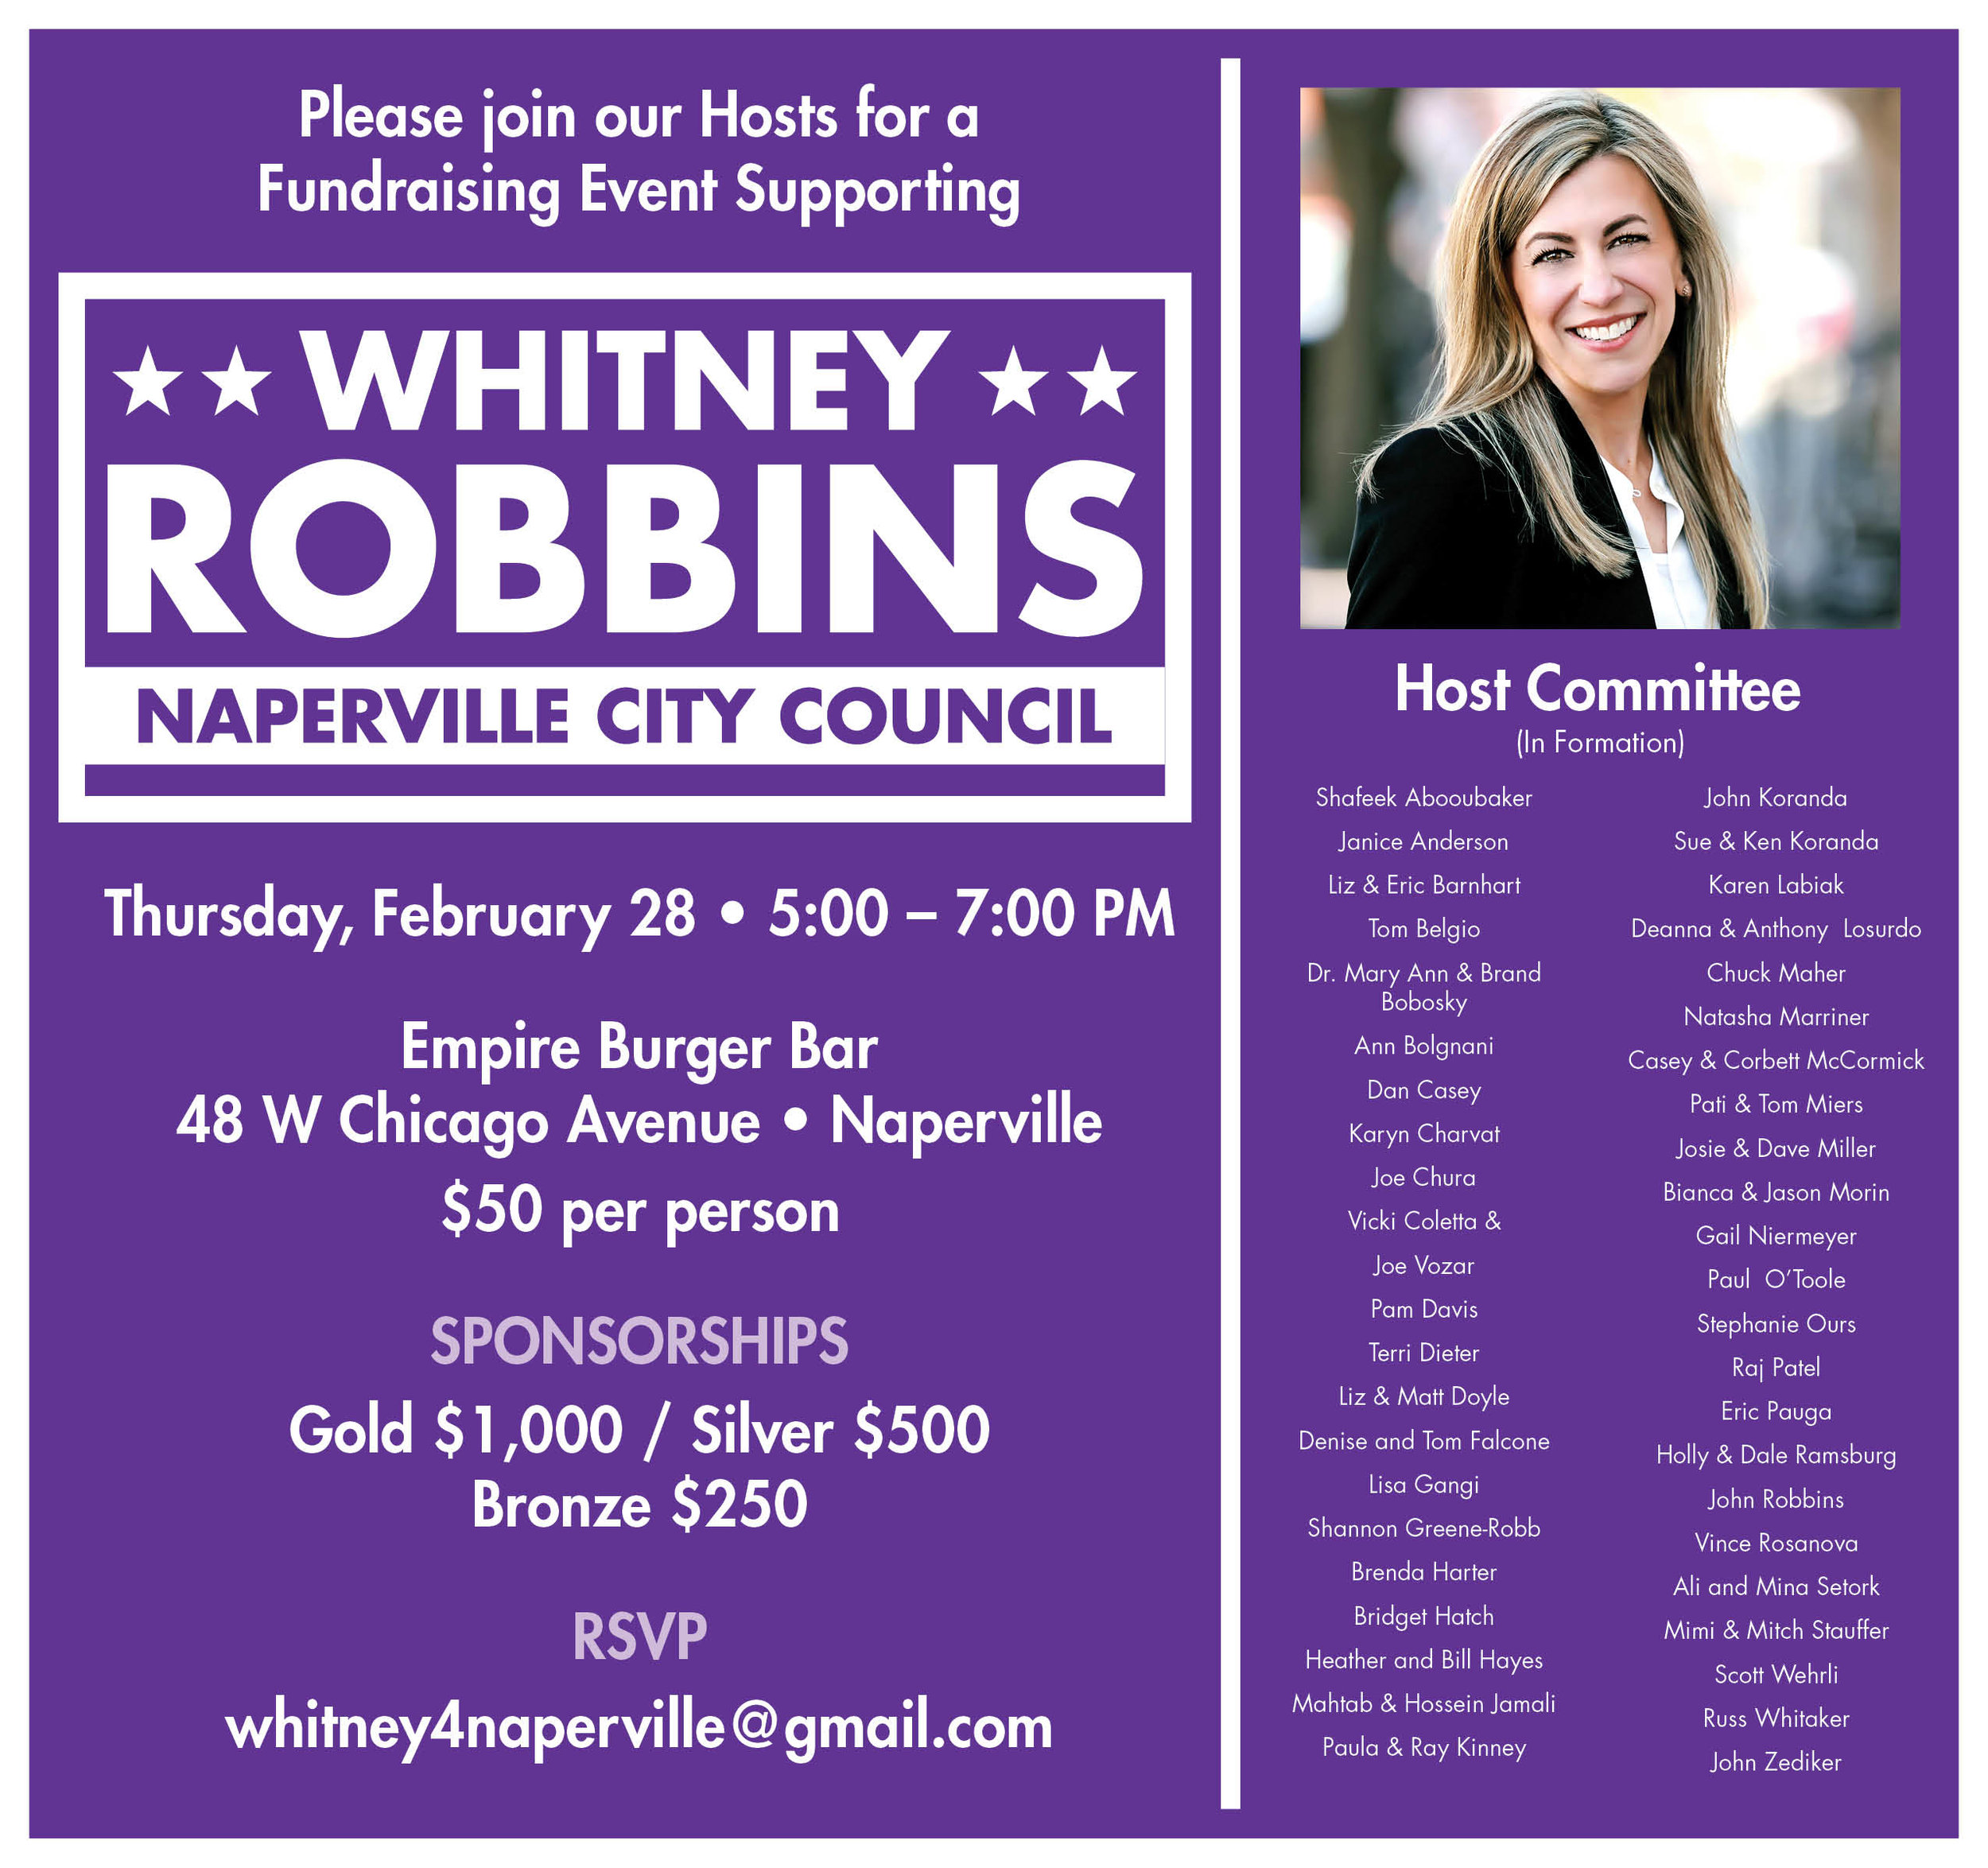 Whitney Robbins Event Invitation - 2_28_19 REV2 - WEB.jpg